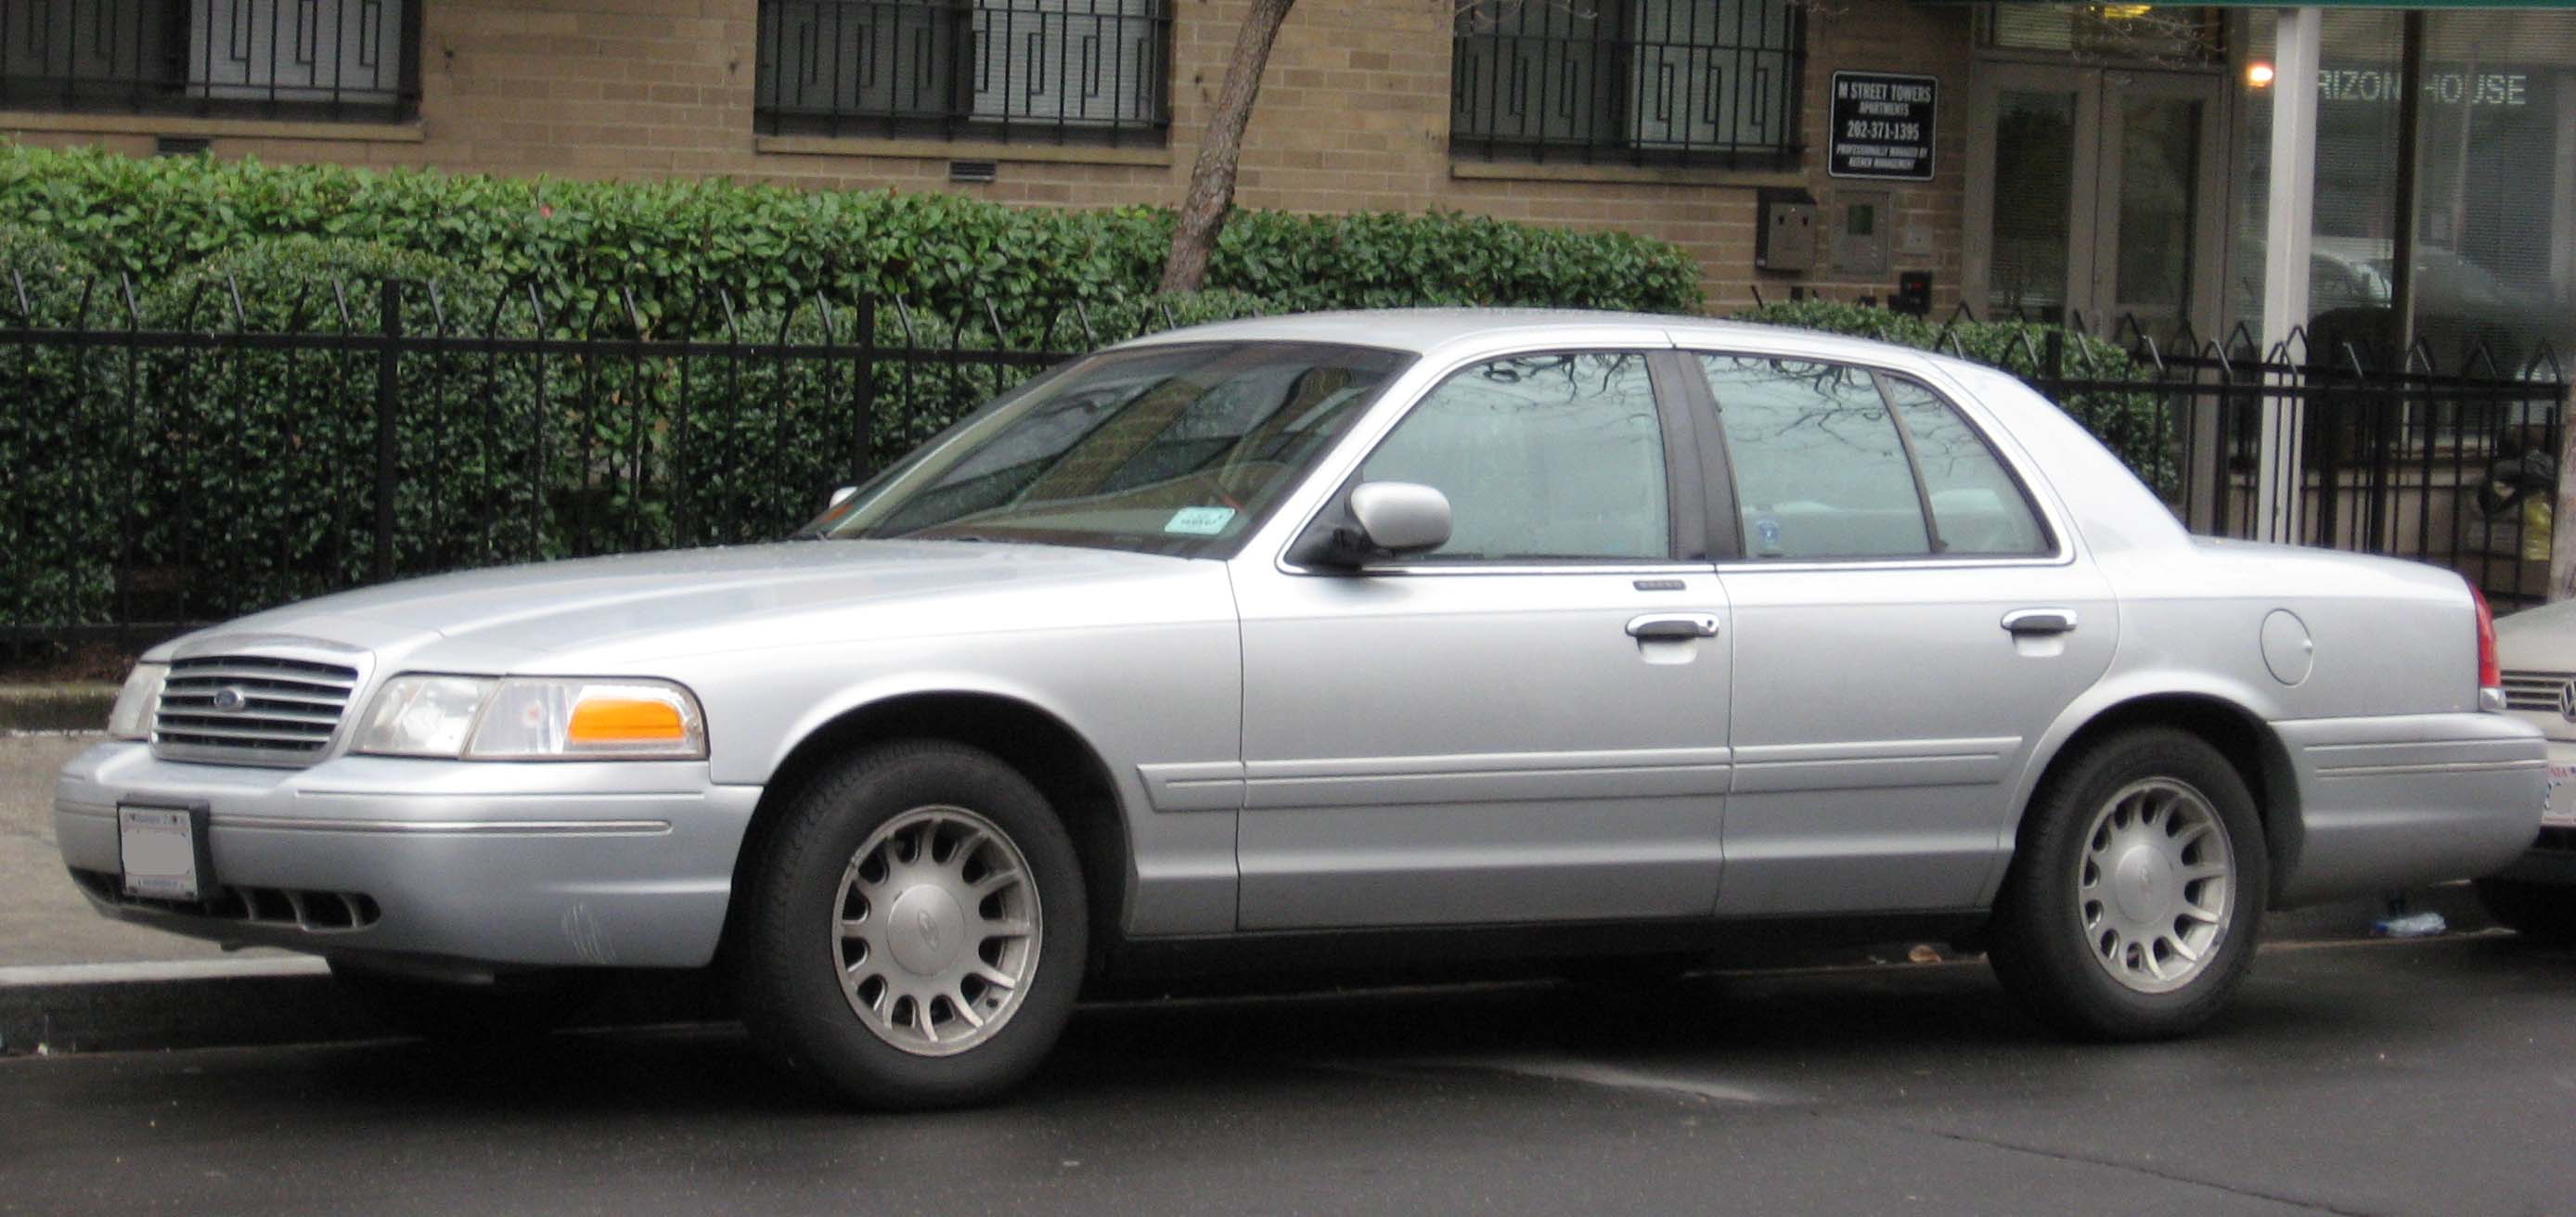 1999 Ford Crown Victoria #2